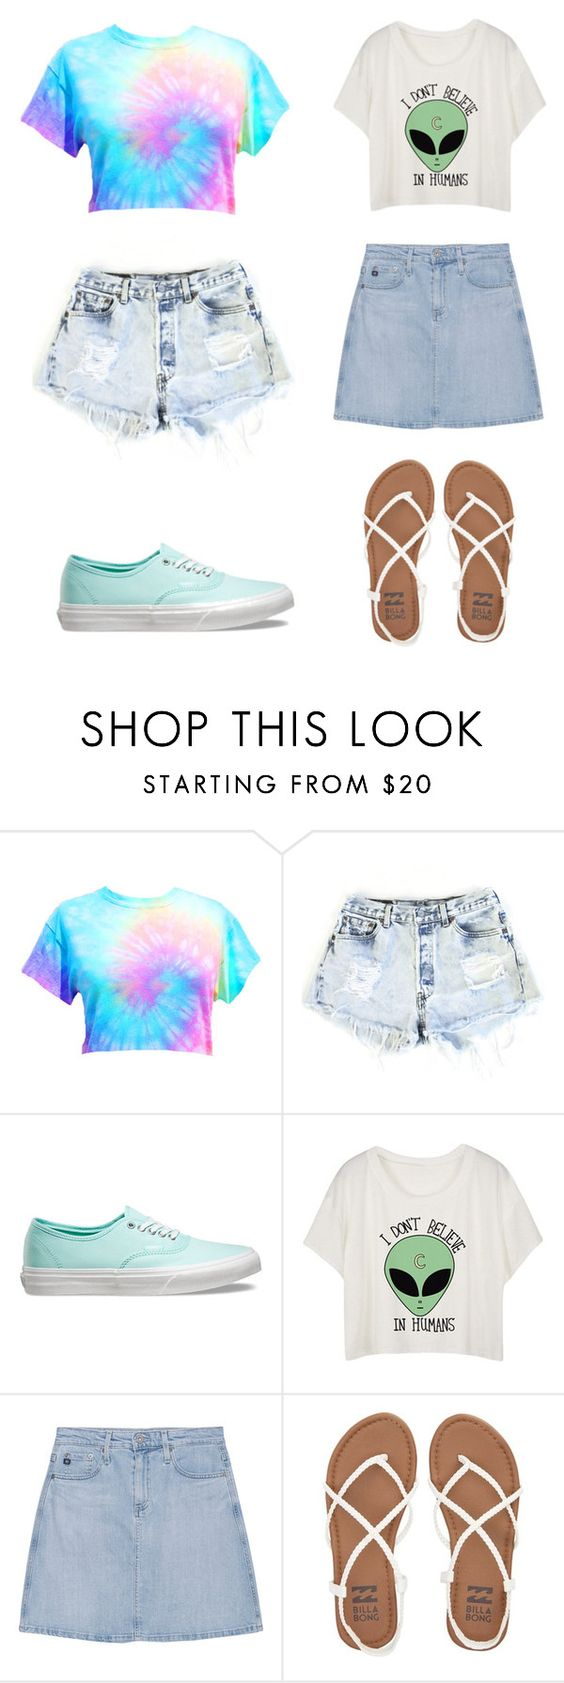 """Untitled #250"" by puplove905 on Polyvore featuring Levi's, Vans, AG Adriano Goldschmied and Billabong"